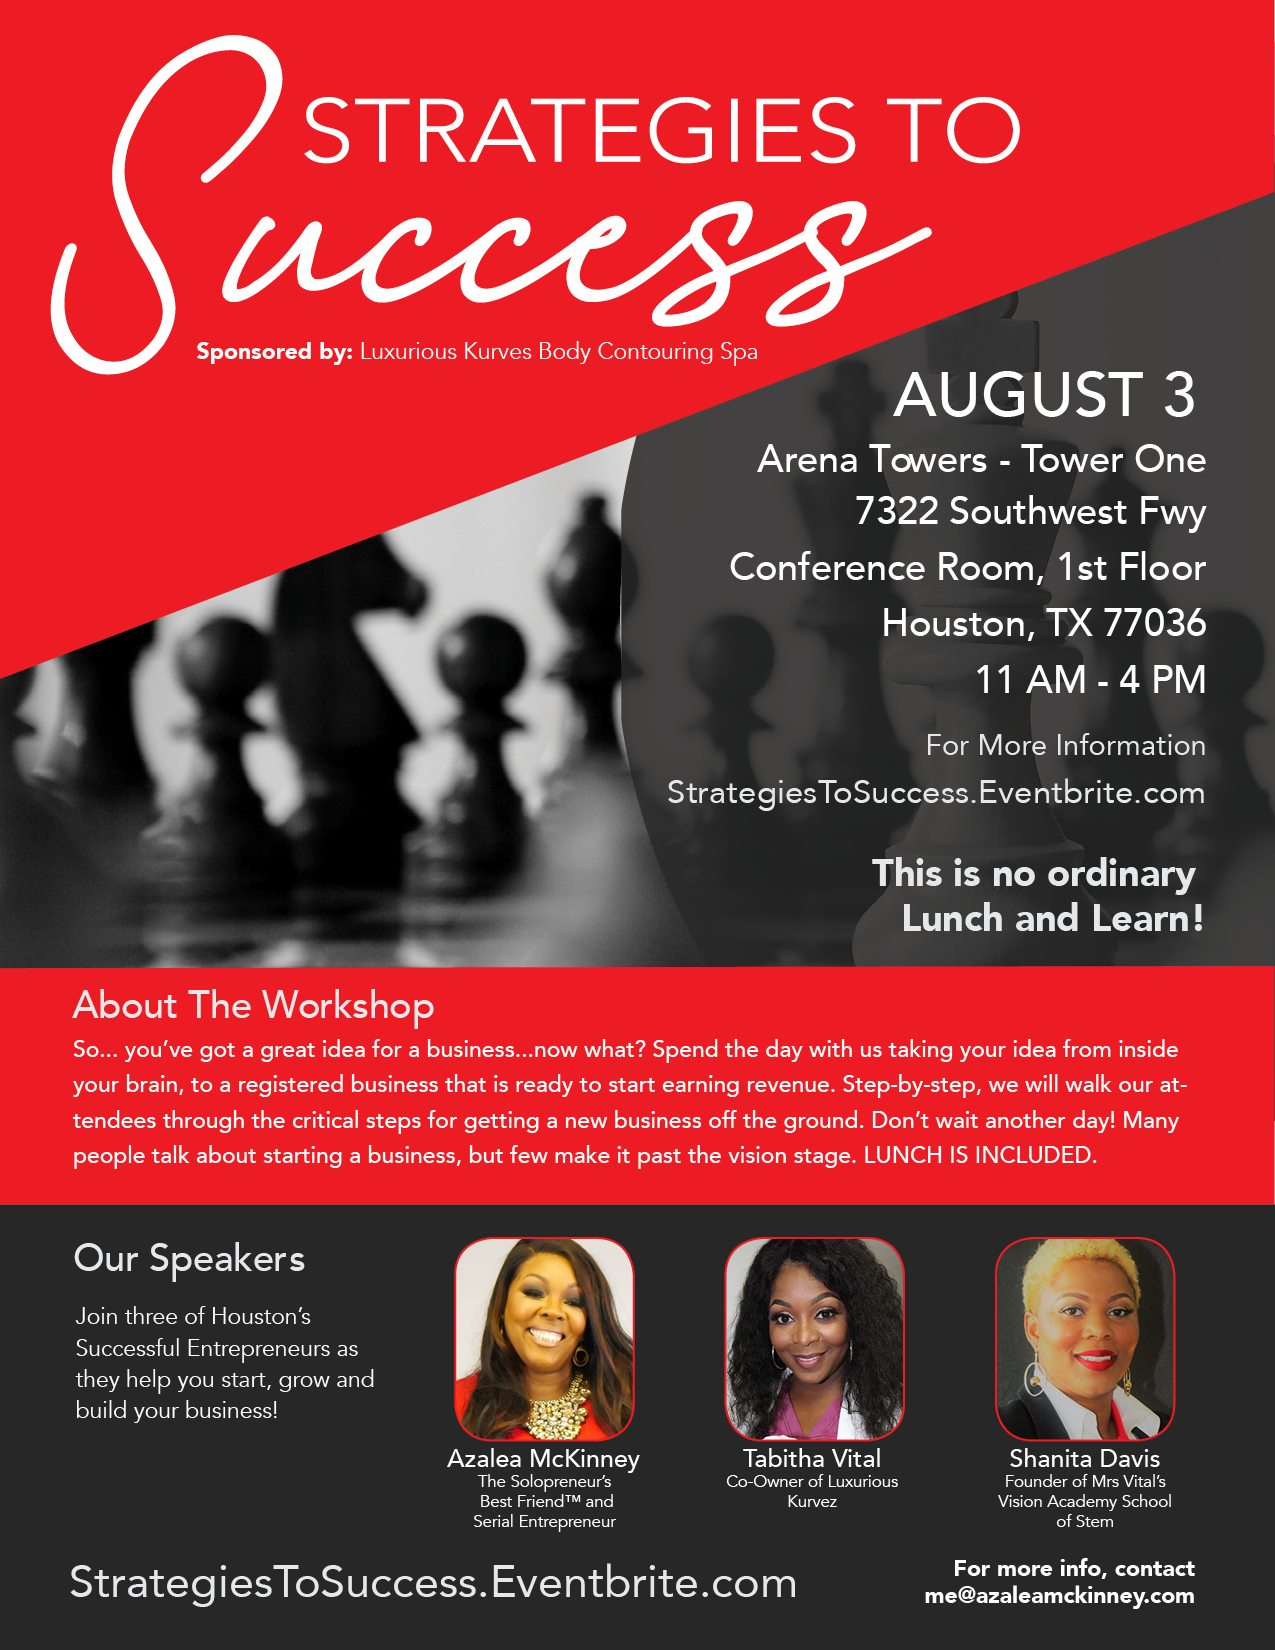 Strategies to Success Business Development Event